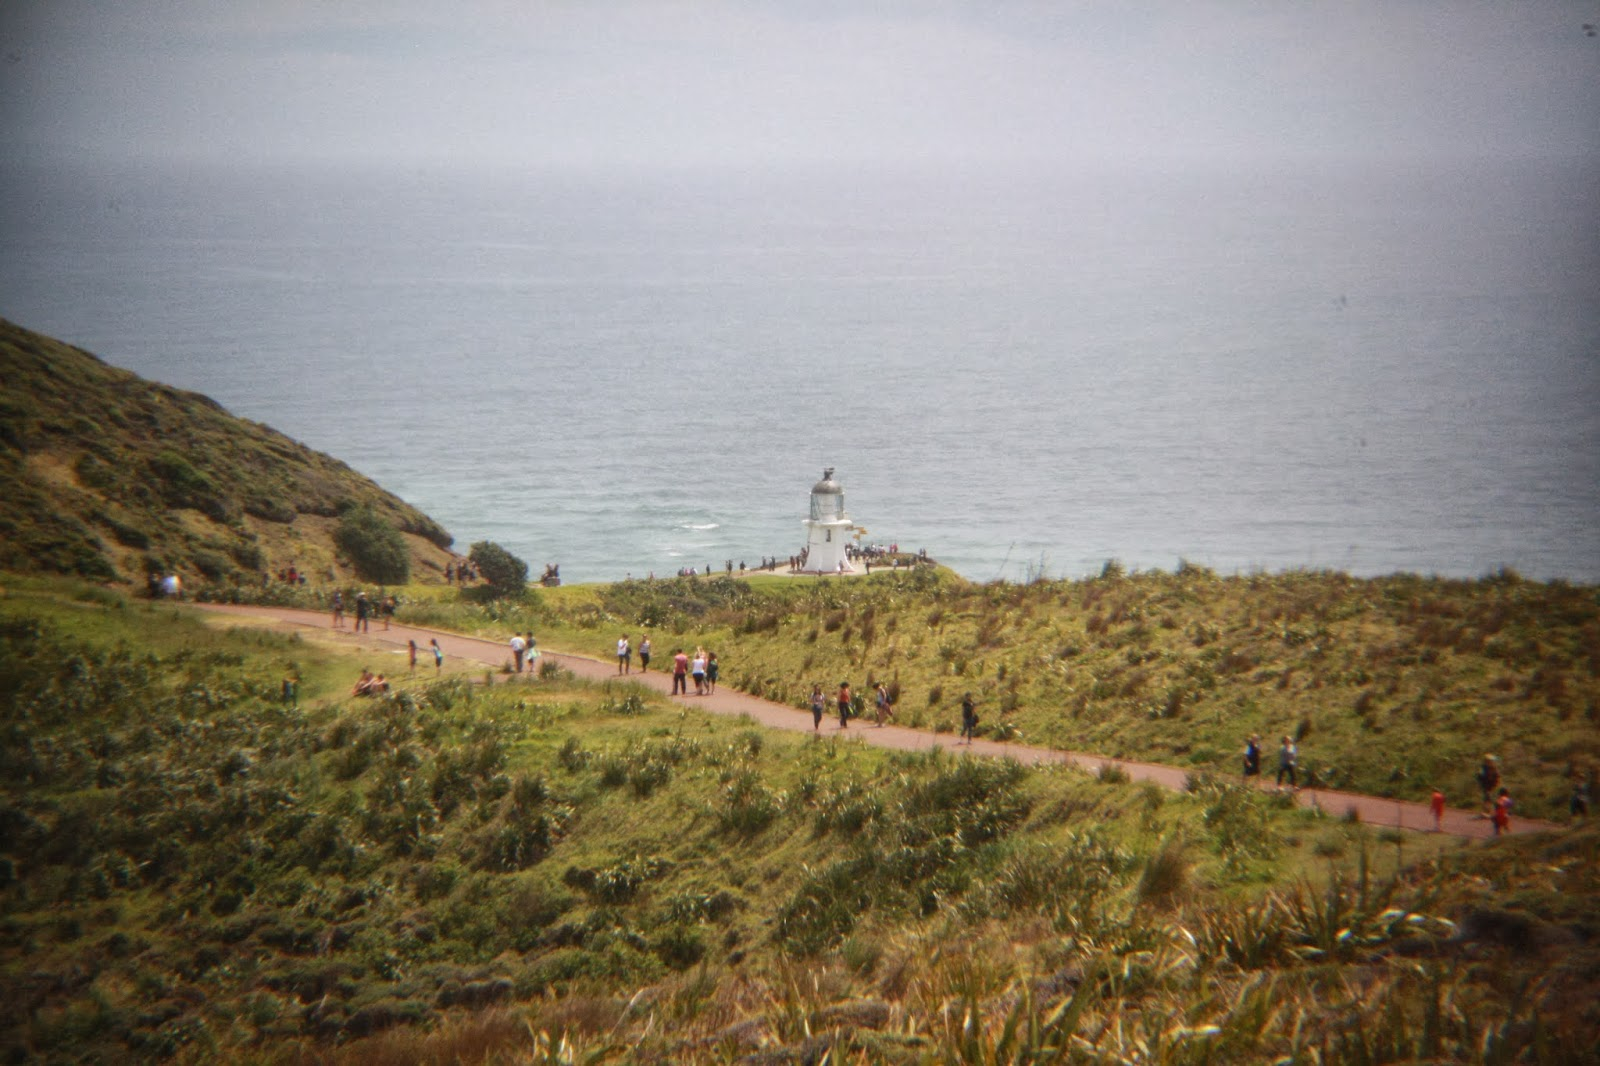 The Cape Reinga light house is in the distance.